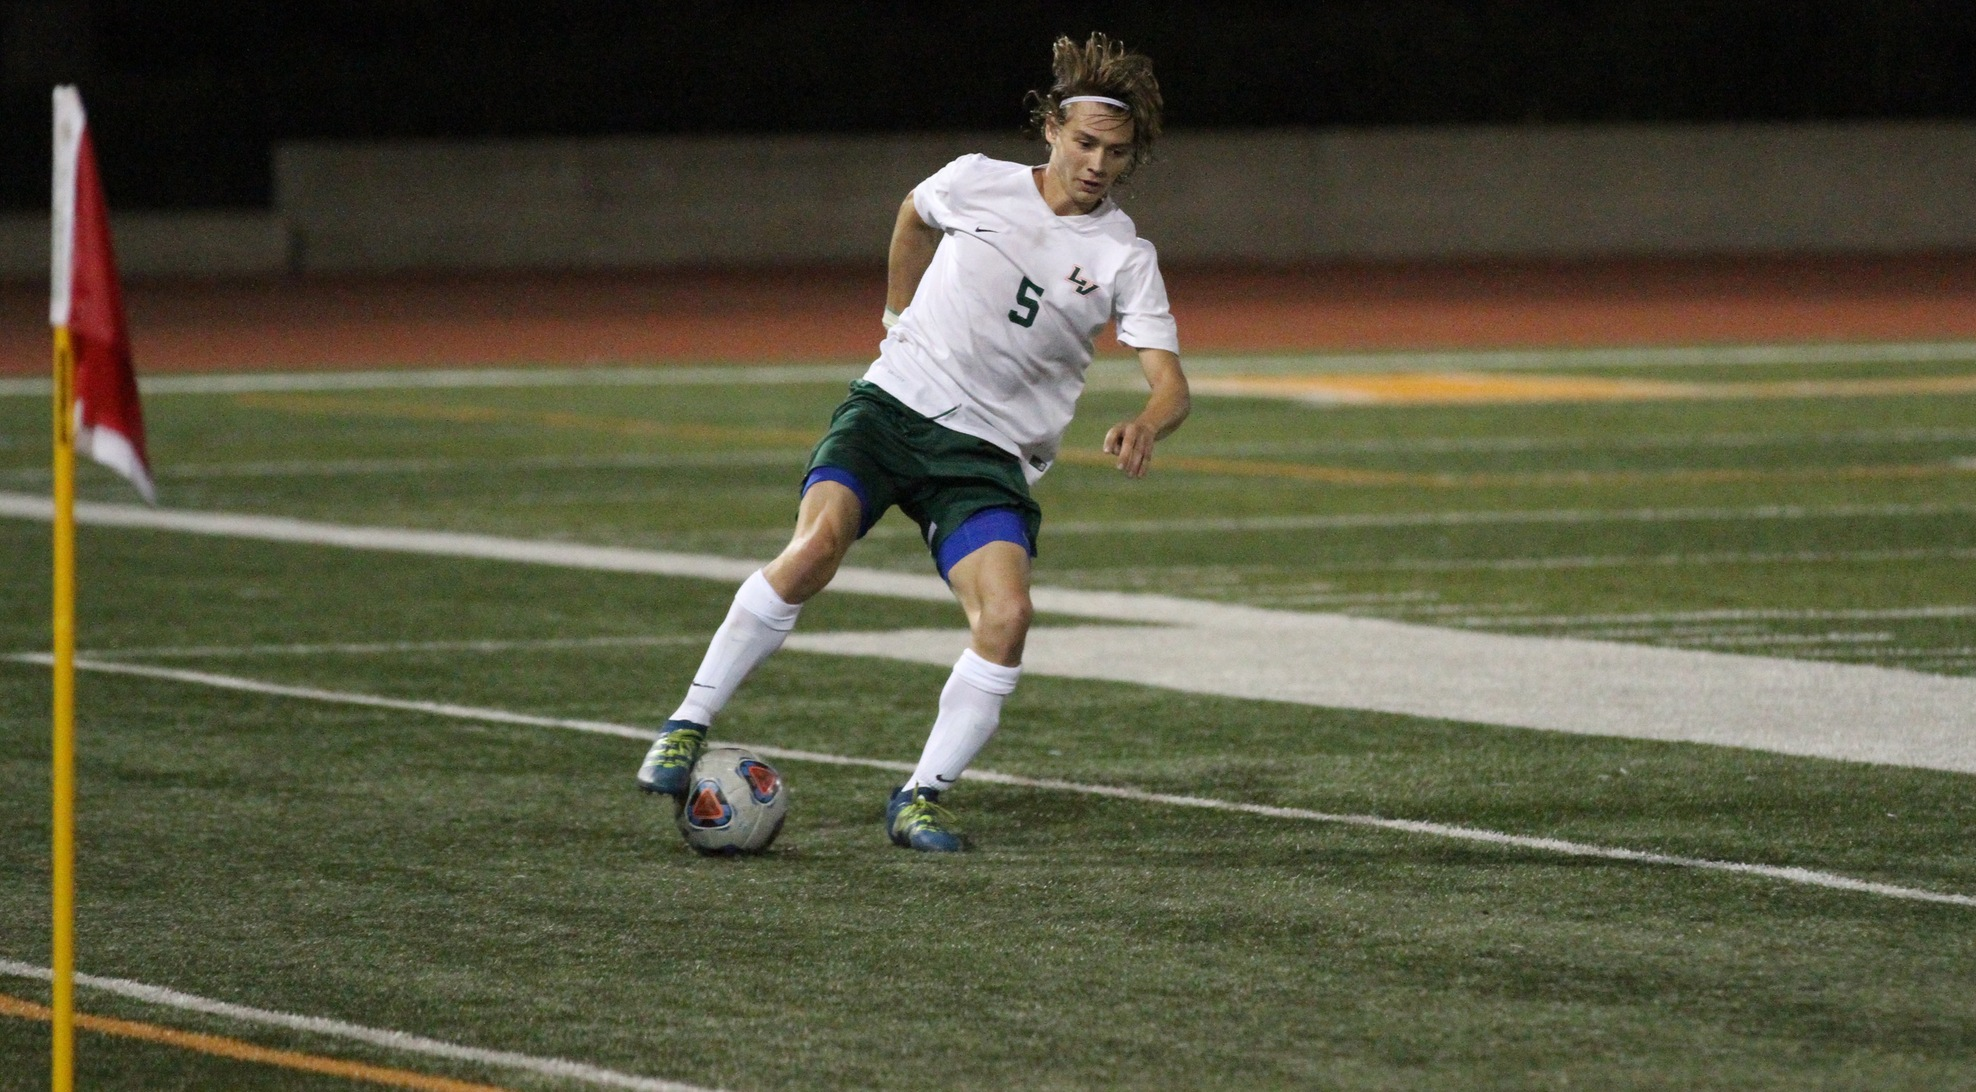 Men's Soccer cruises past Caltech at home